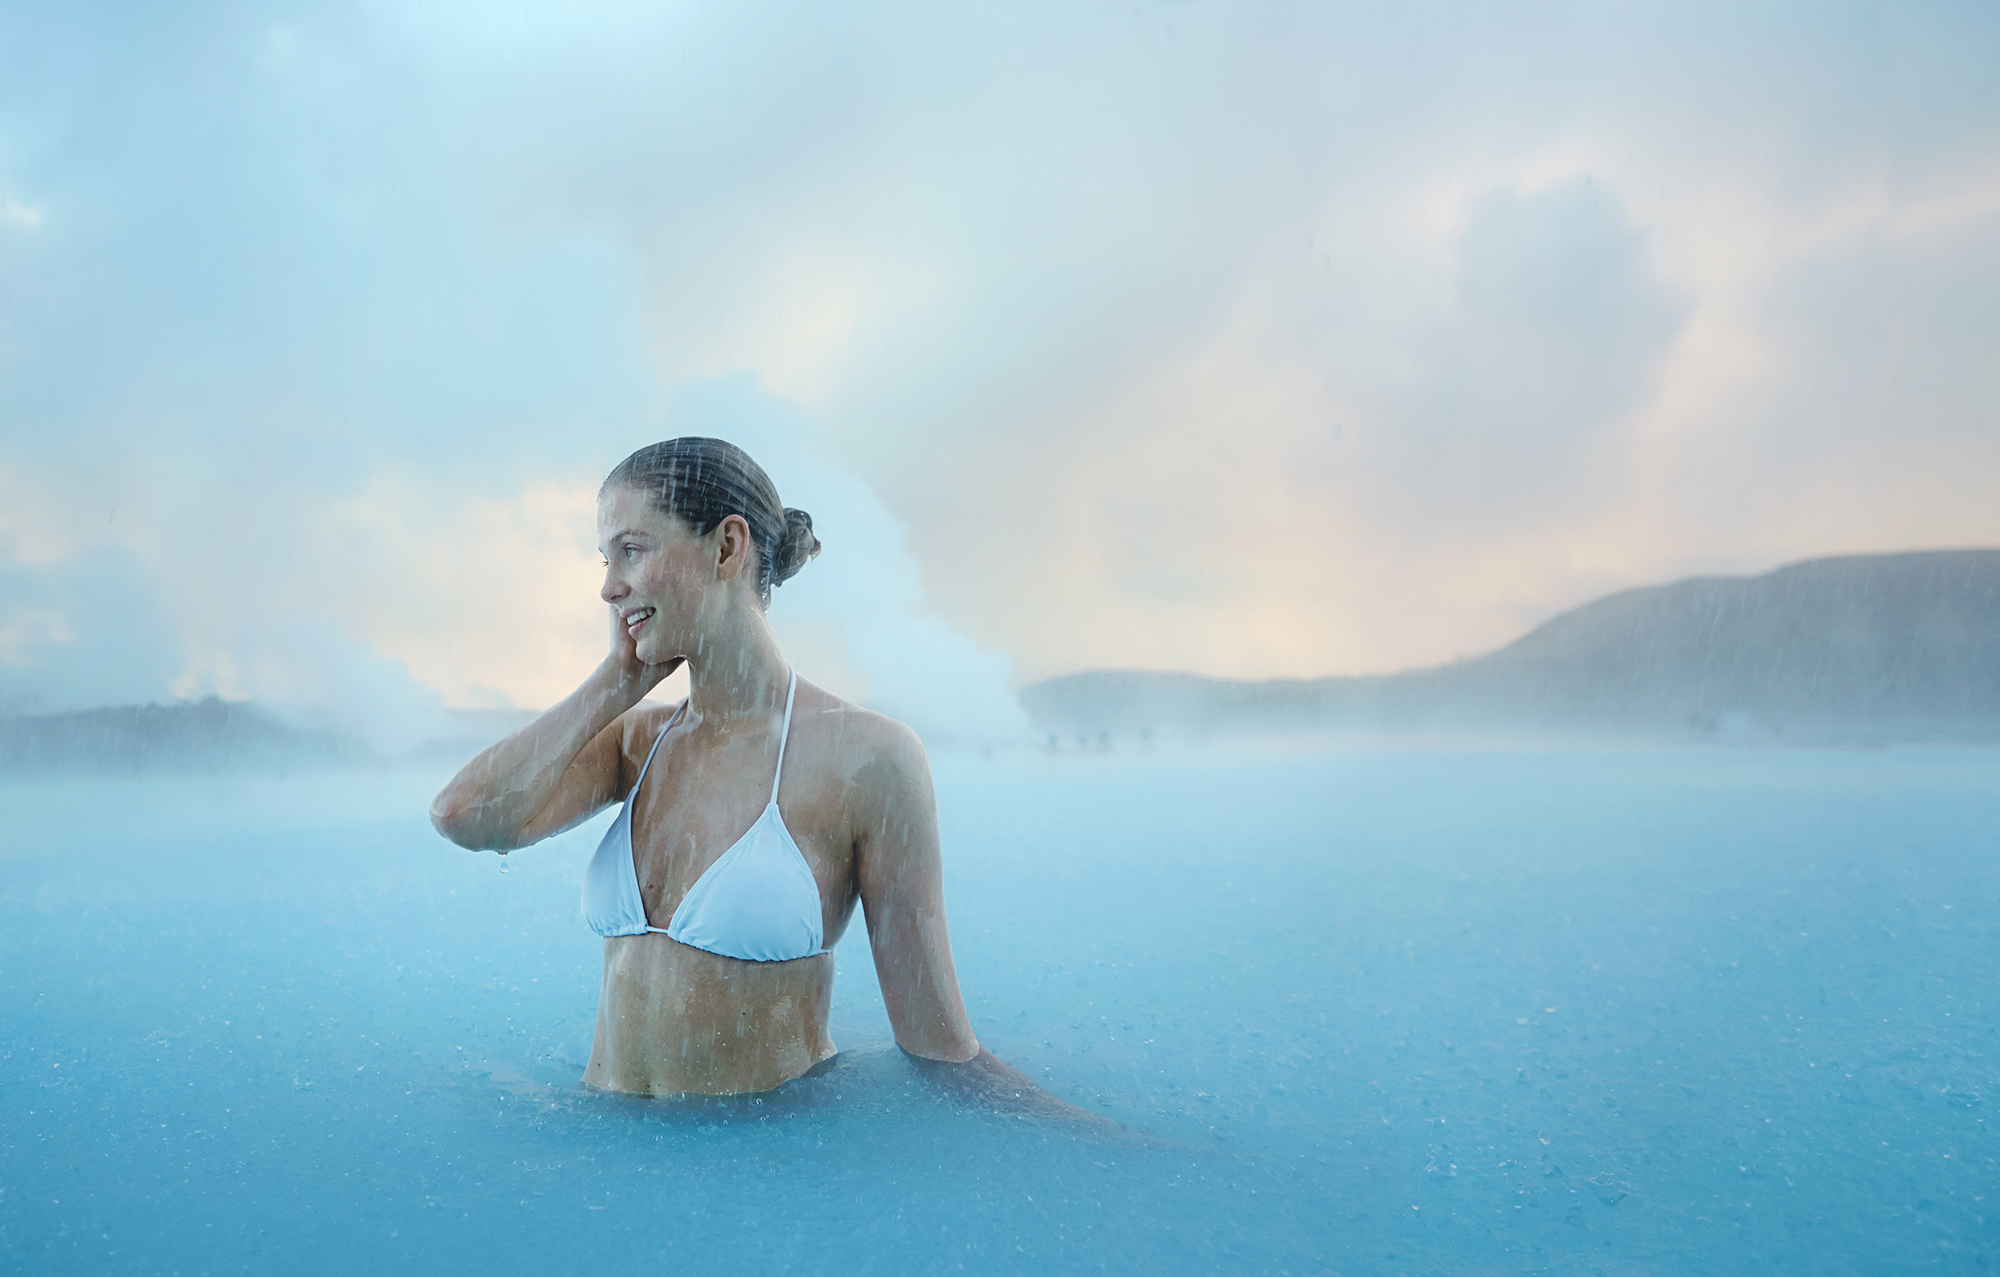 Top off your adventure in Iceland with a visit to the Blue Lagoon Geothermal Spa.